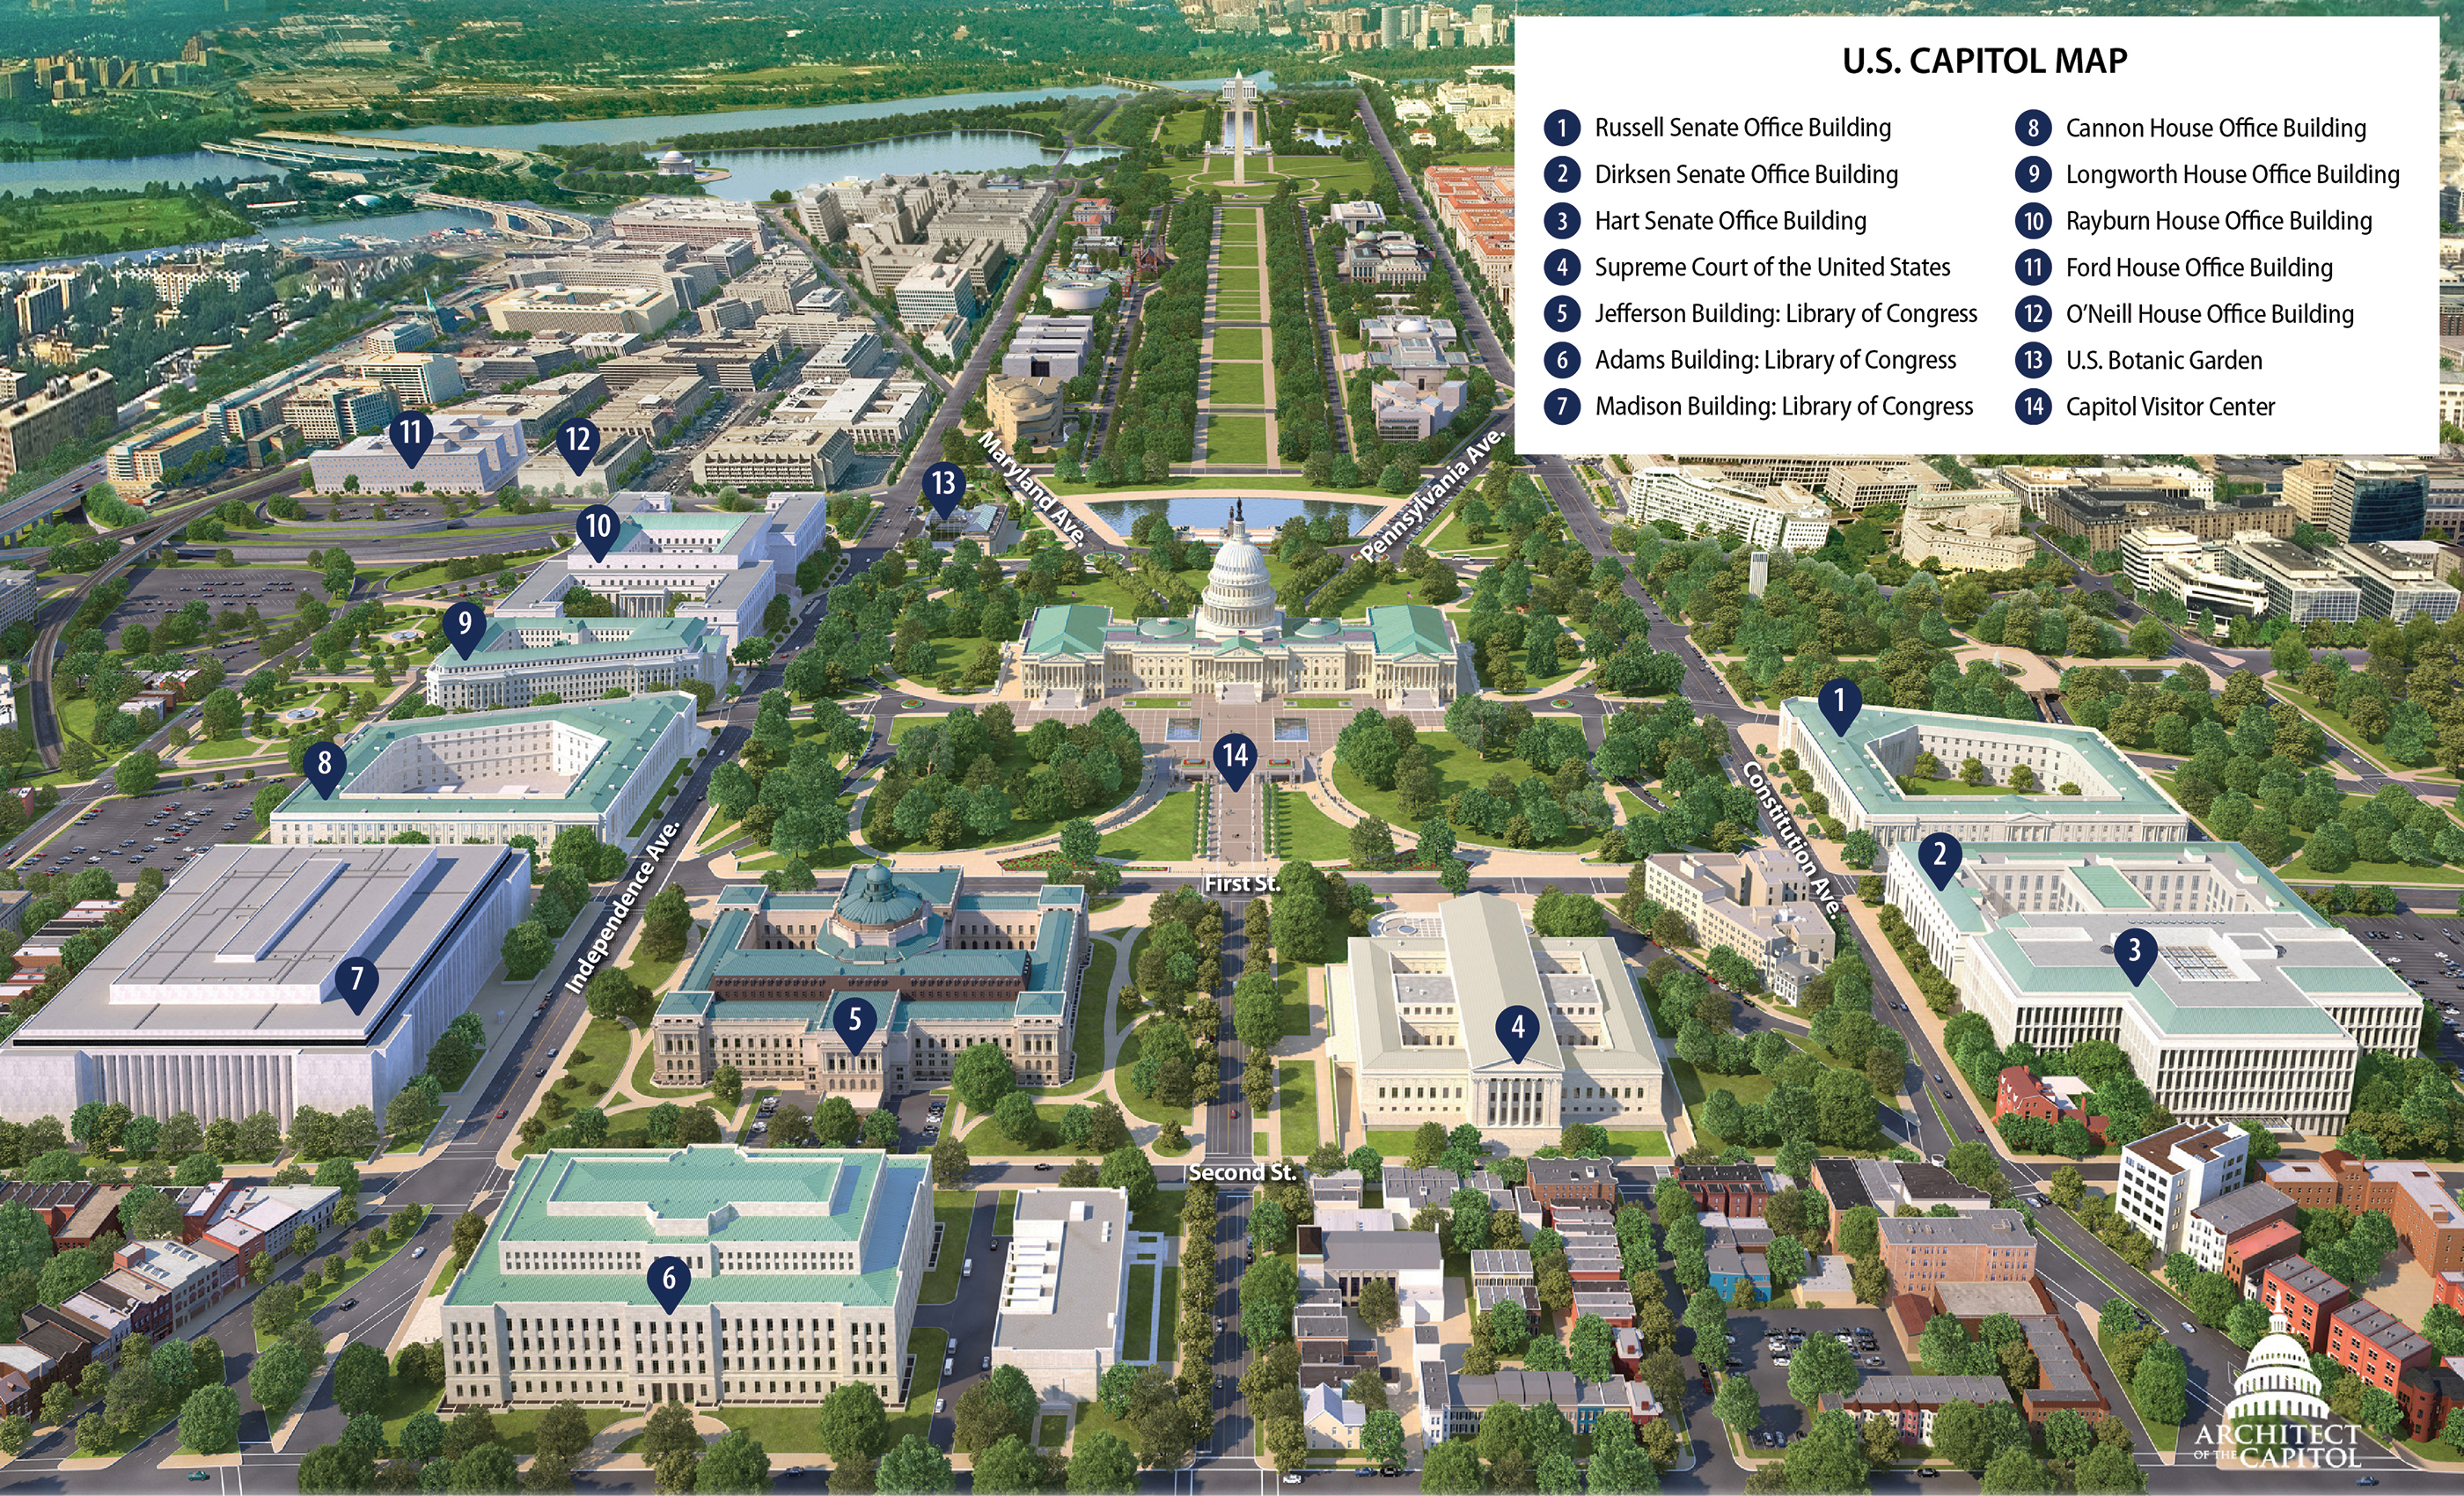 Print-Friendly Map Of Capitol Hill | Architect Of The Capitol - Printable Aerial Maps